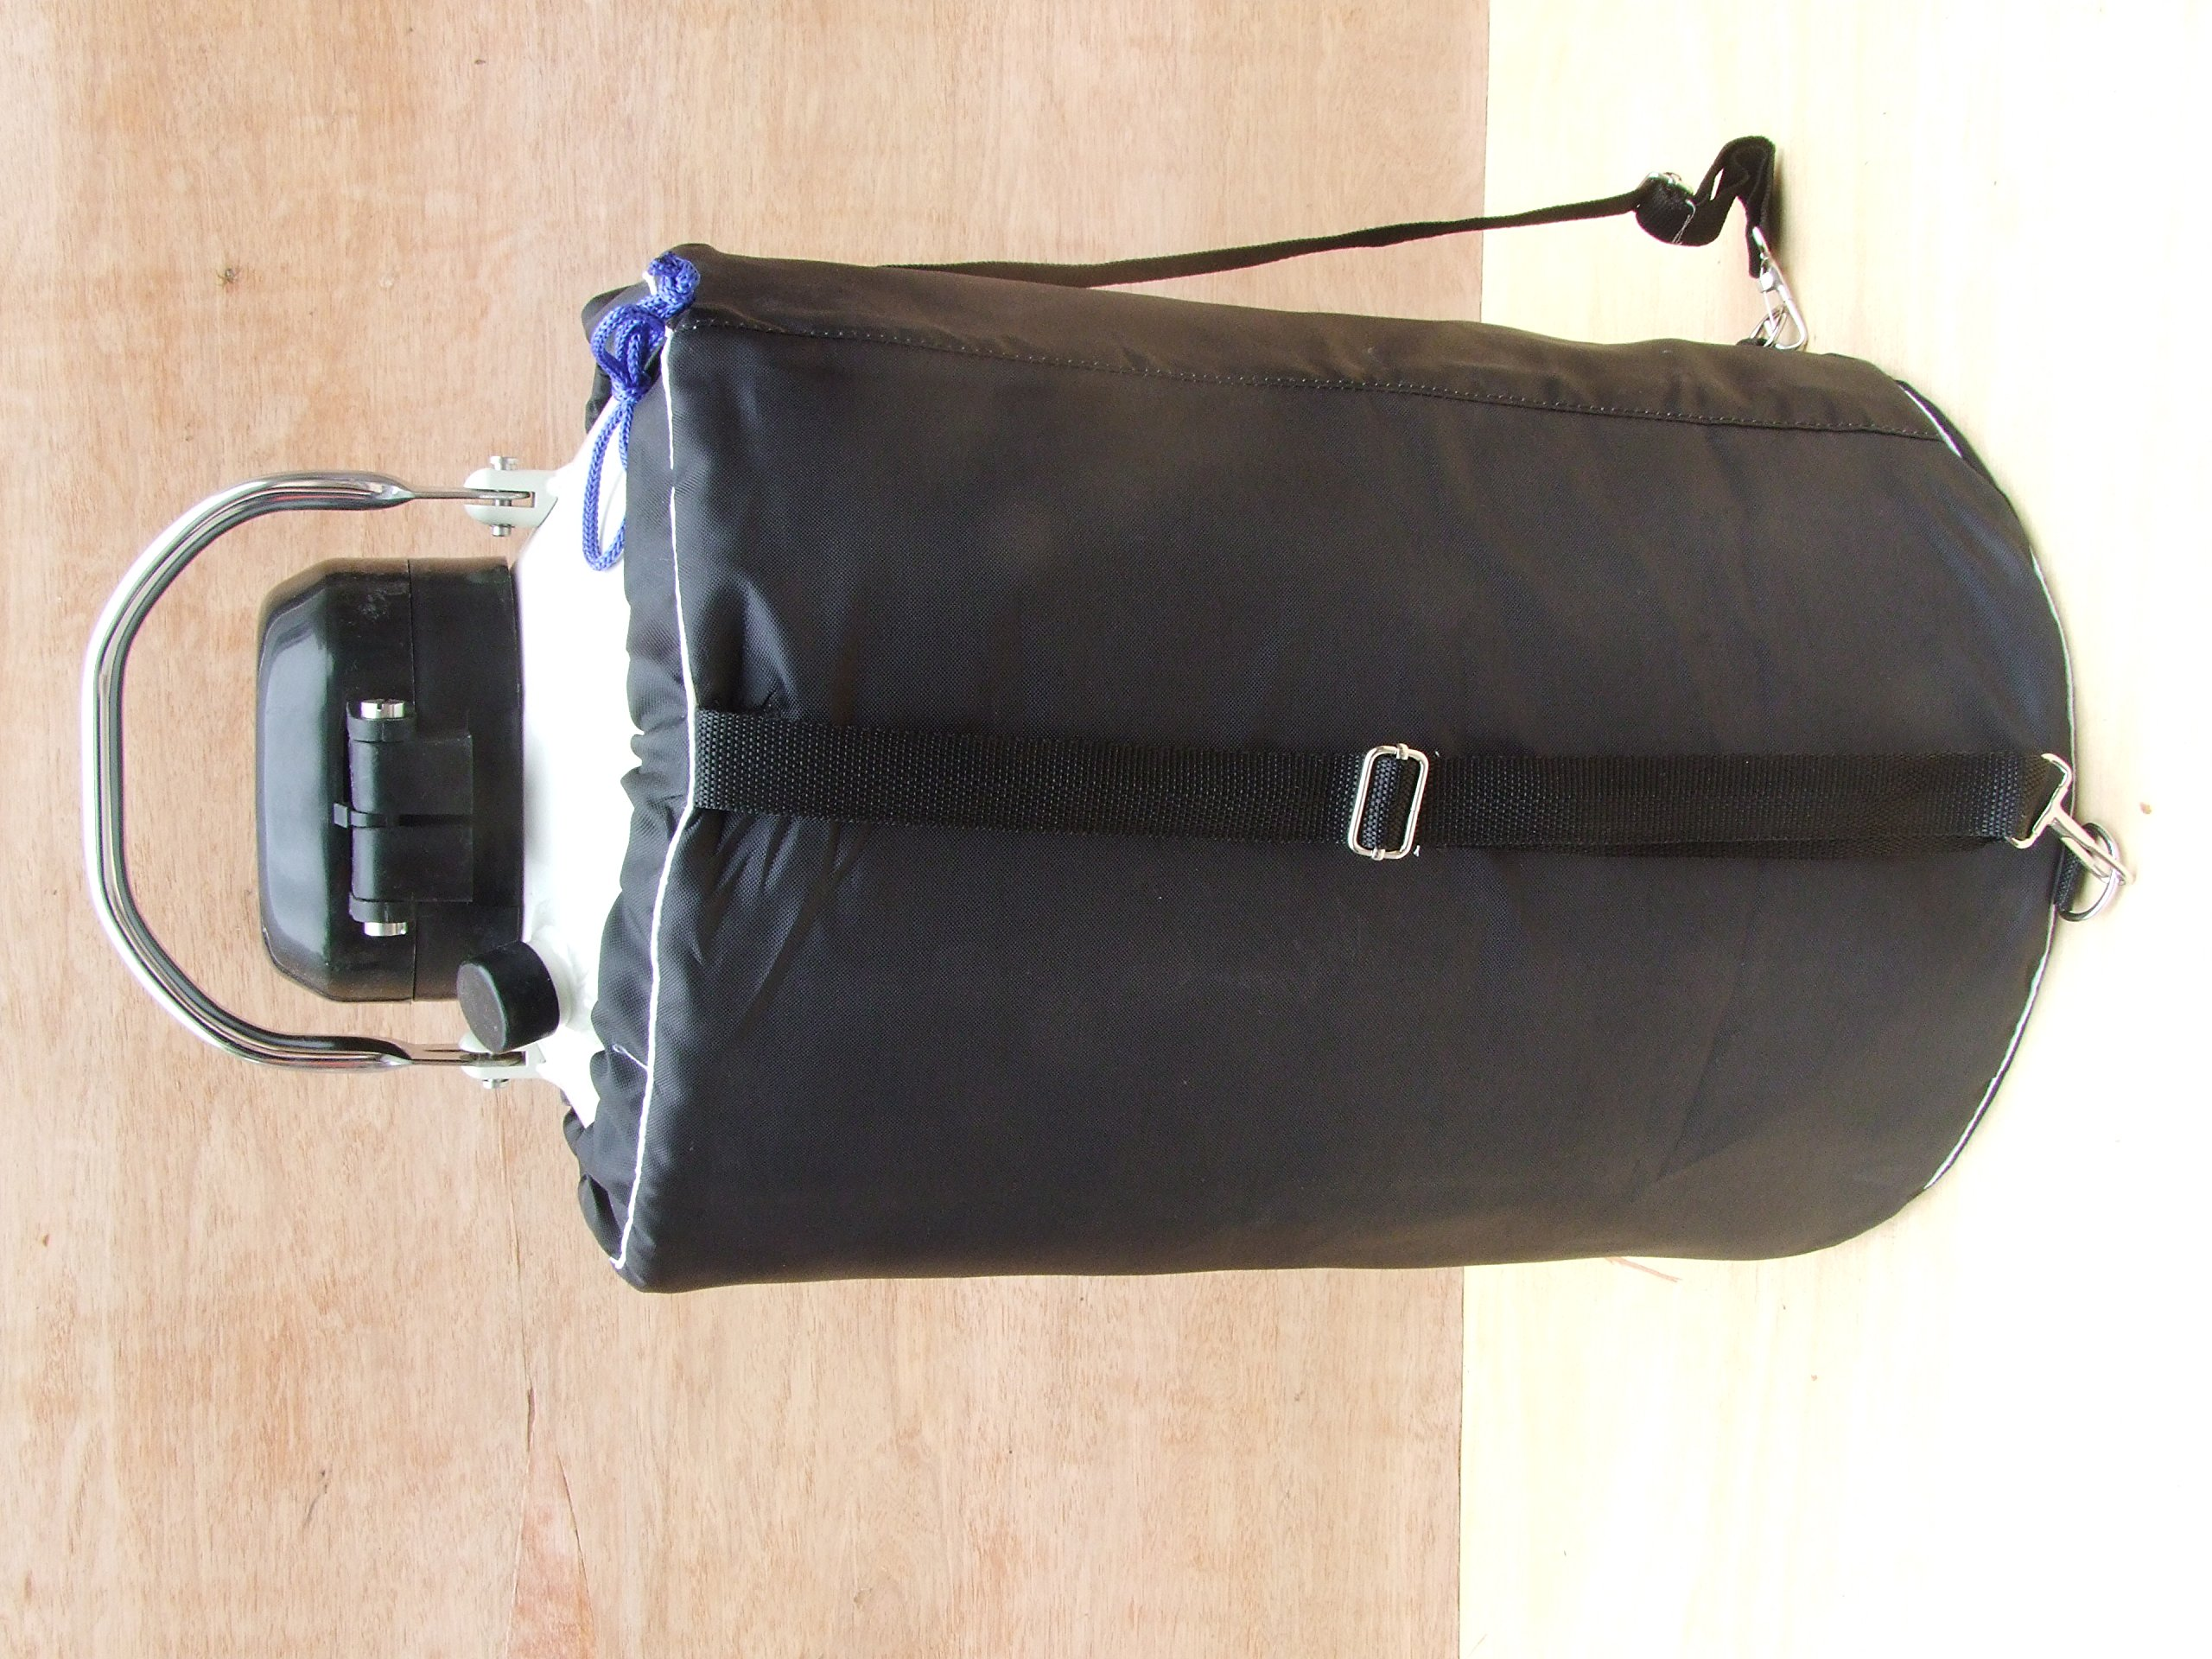 10 L Cryogenic Container Liquid Nitrogen Ln2 Tank with Straps and Carry Bag by HardwareFactoryStore.com (Image #6)